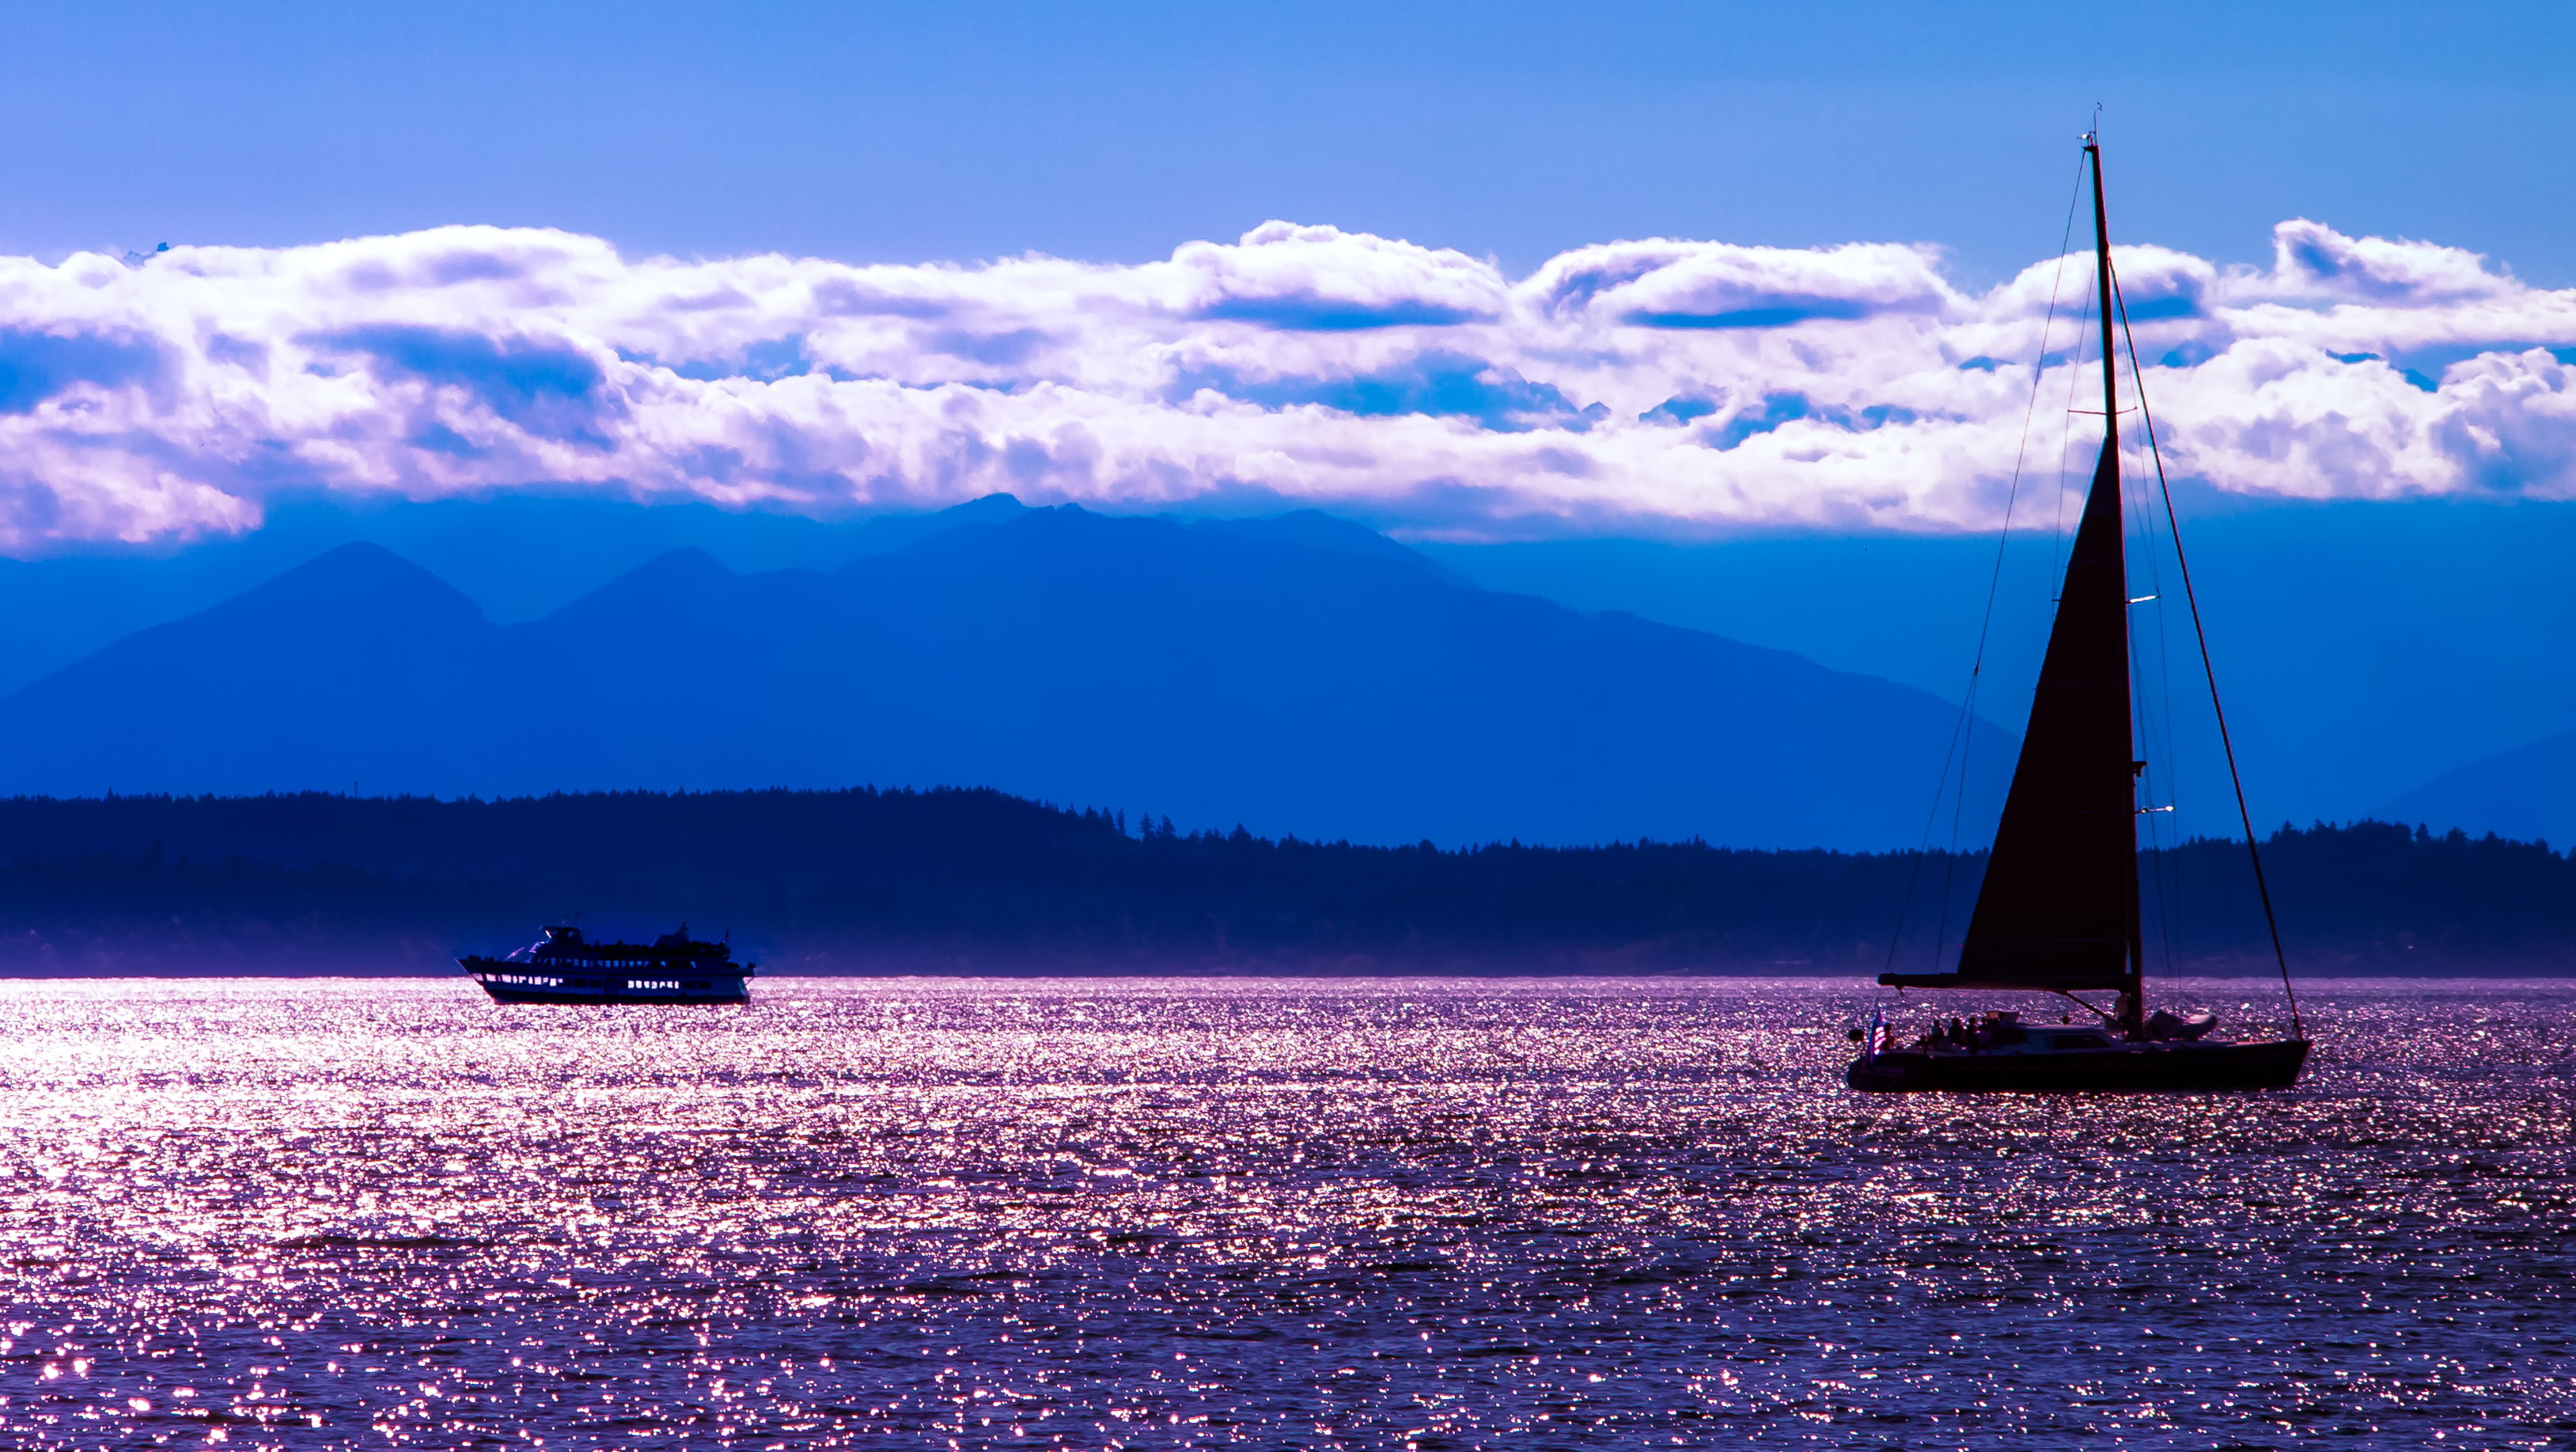 3256x1835 silhouette shot of sail on body of water, puget sound HD wallpaper